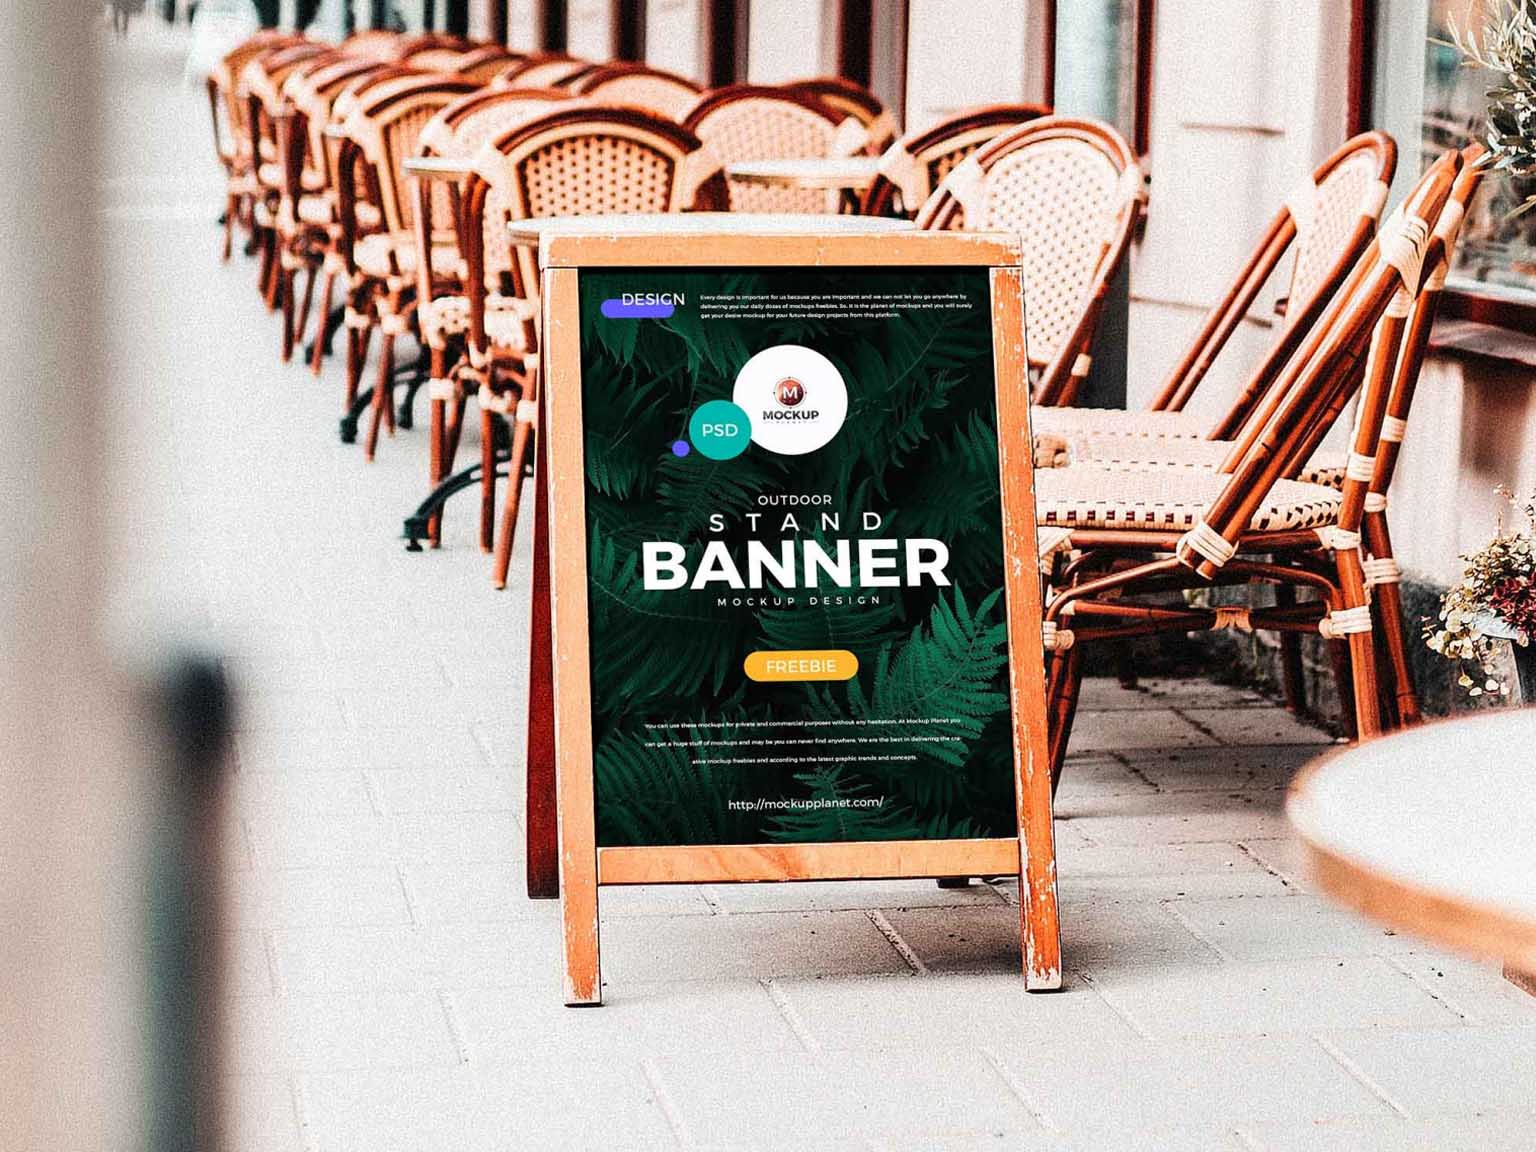 Outdoor Stand Banner printing in qatar